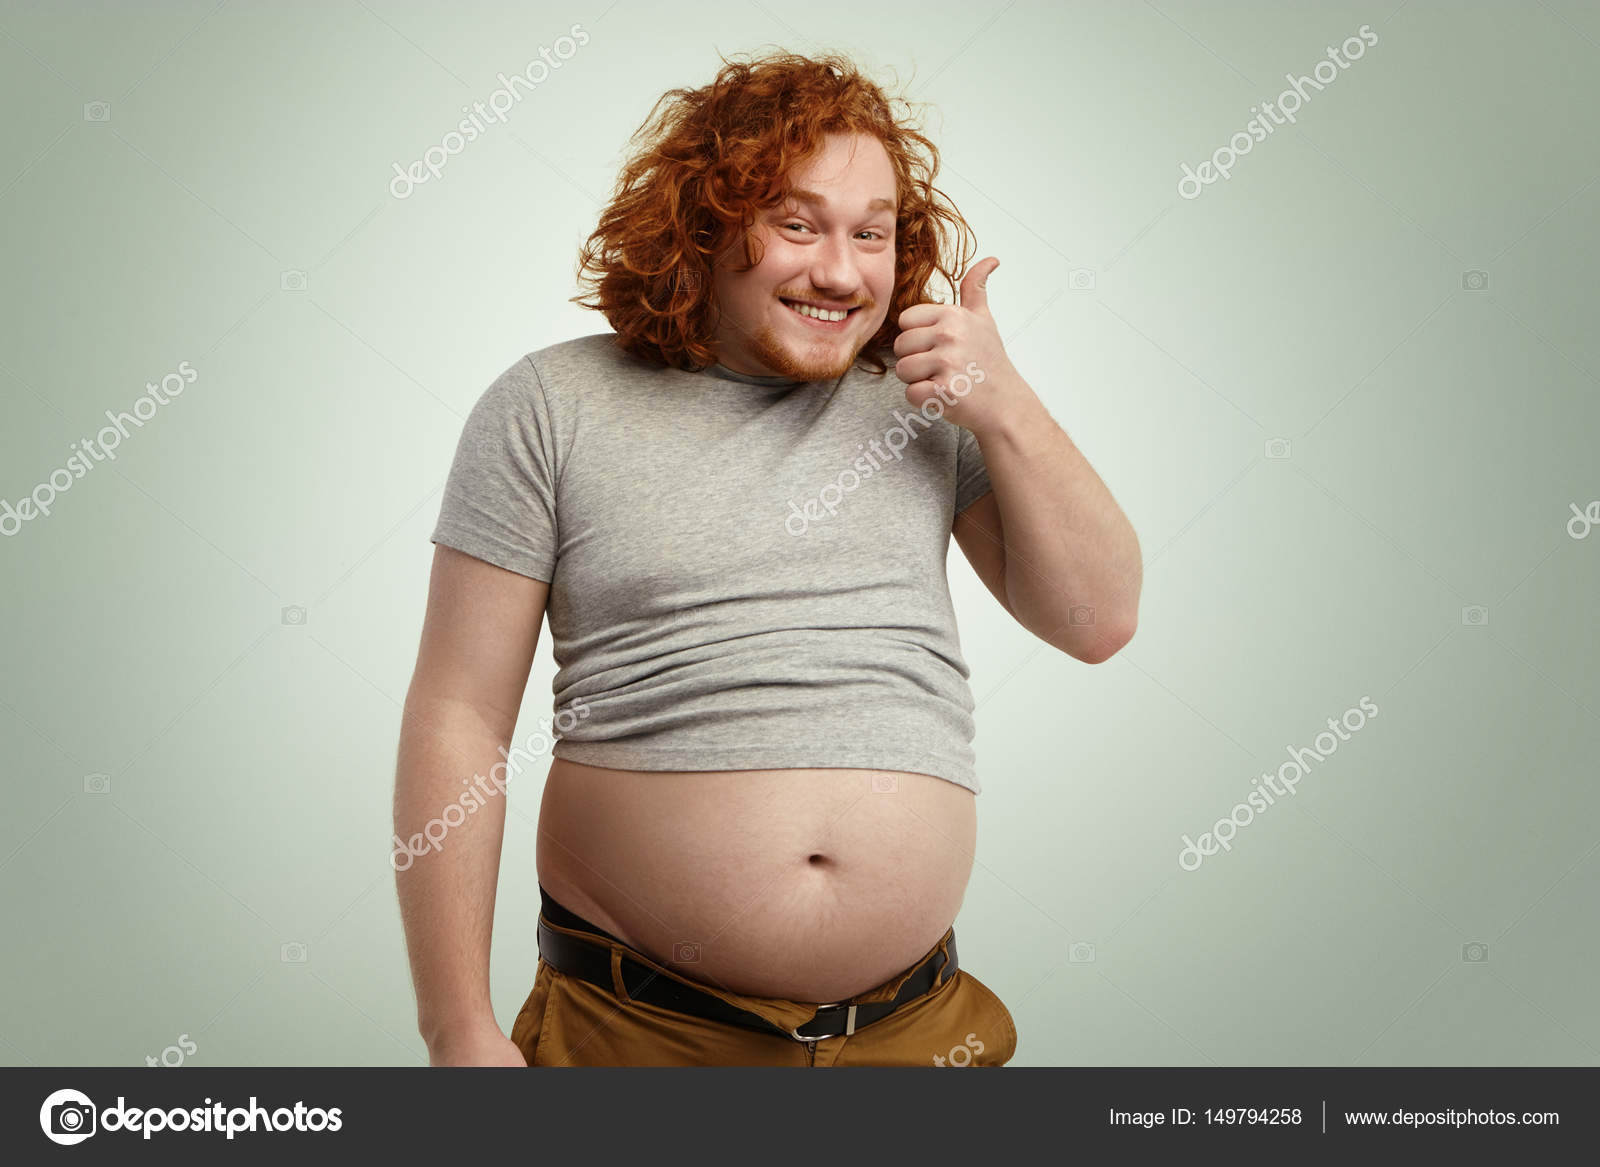 Photo of chubby man agree, rather